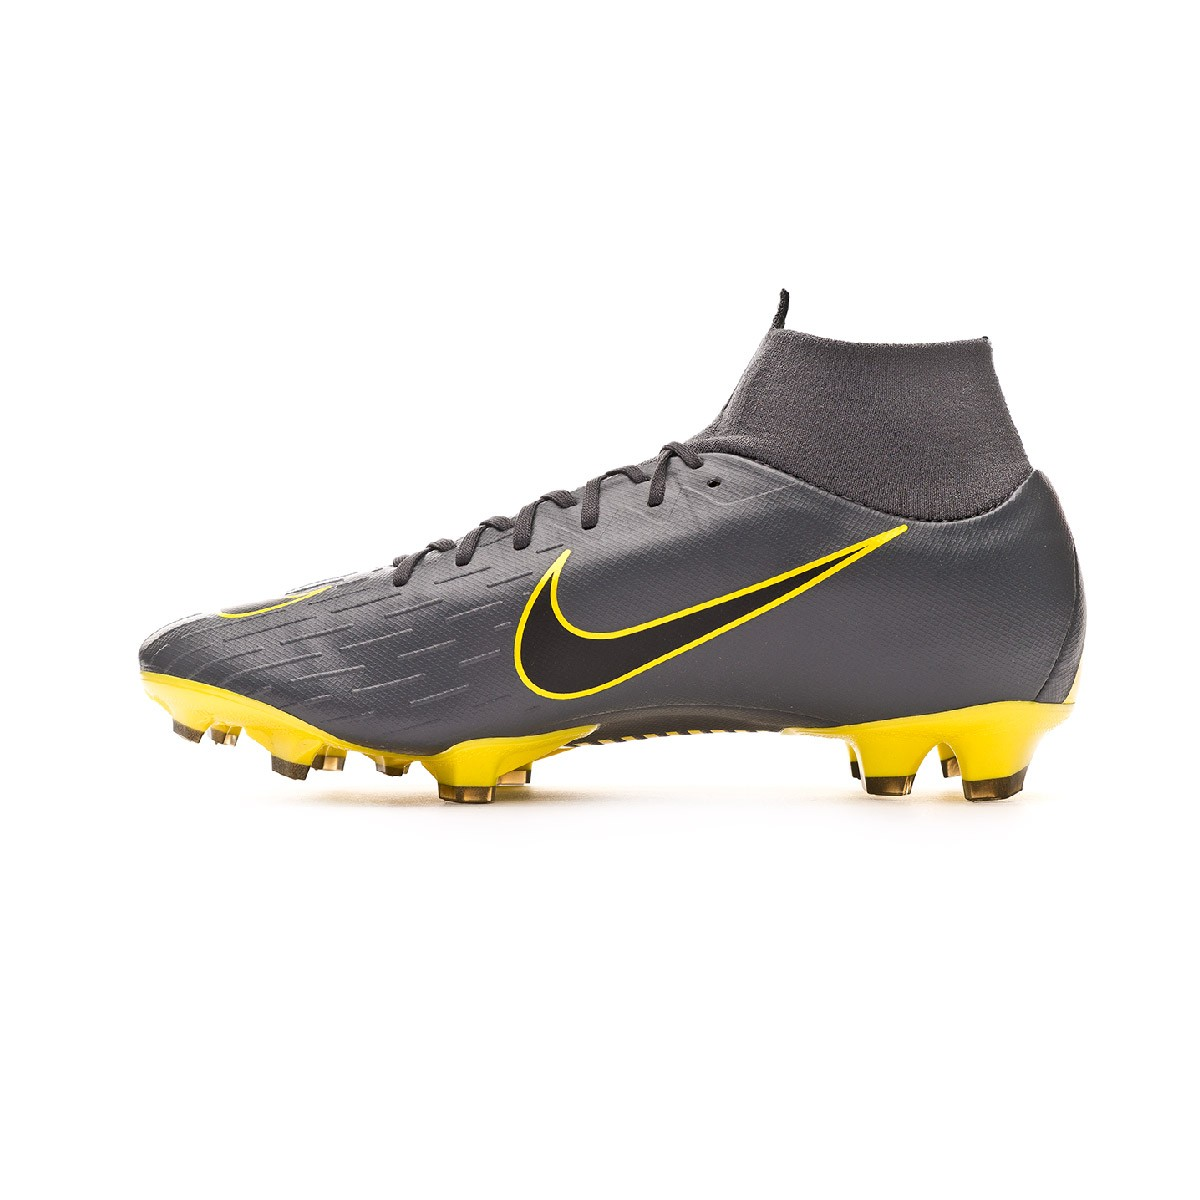 sports shoes 83231 73e6c Football Boots Nike Mercurial Superfly VI Pro FG Dark grey-Black-Optical  yellow - Football store Fútbol Emotion